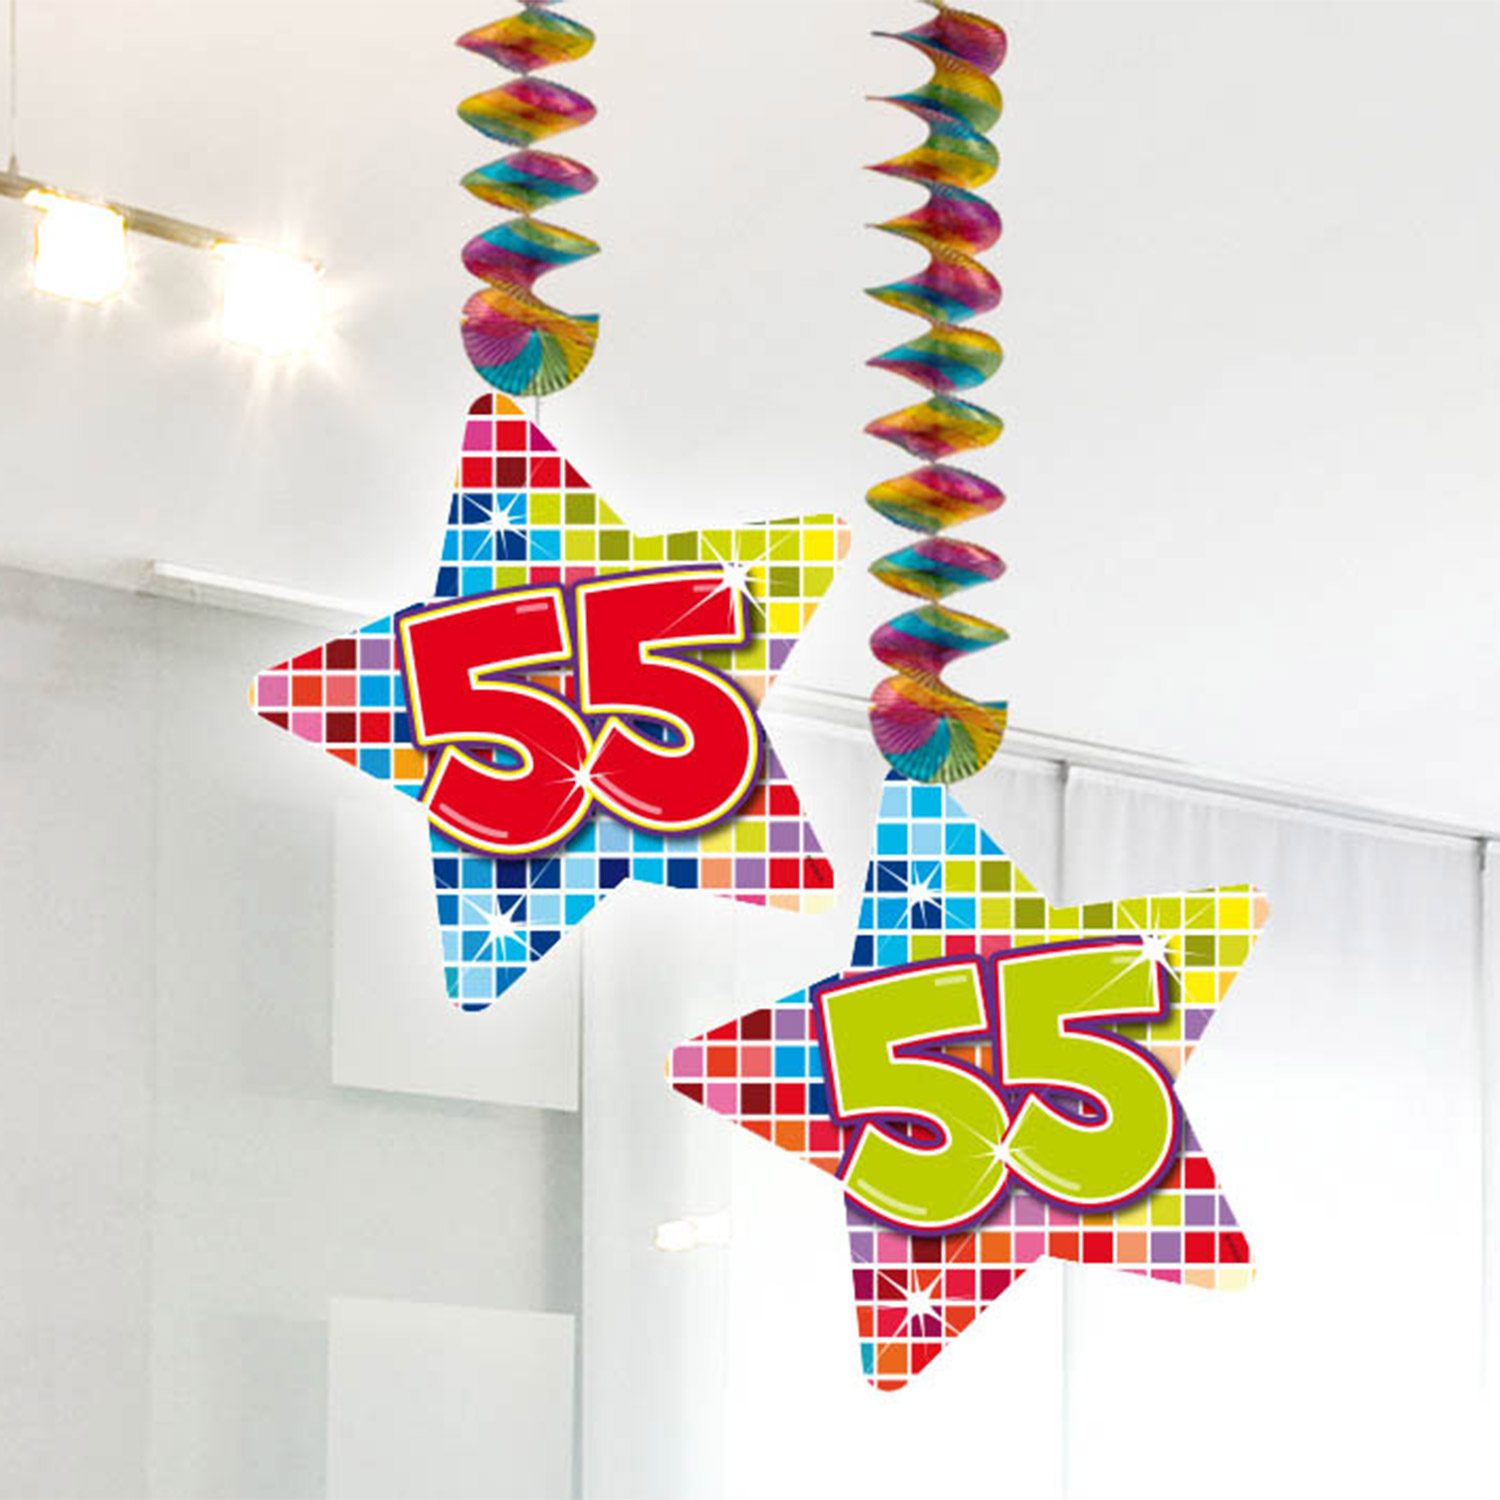 Hangdecoratie Blocks 55